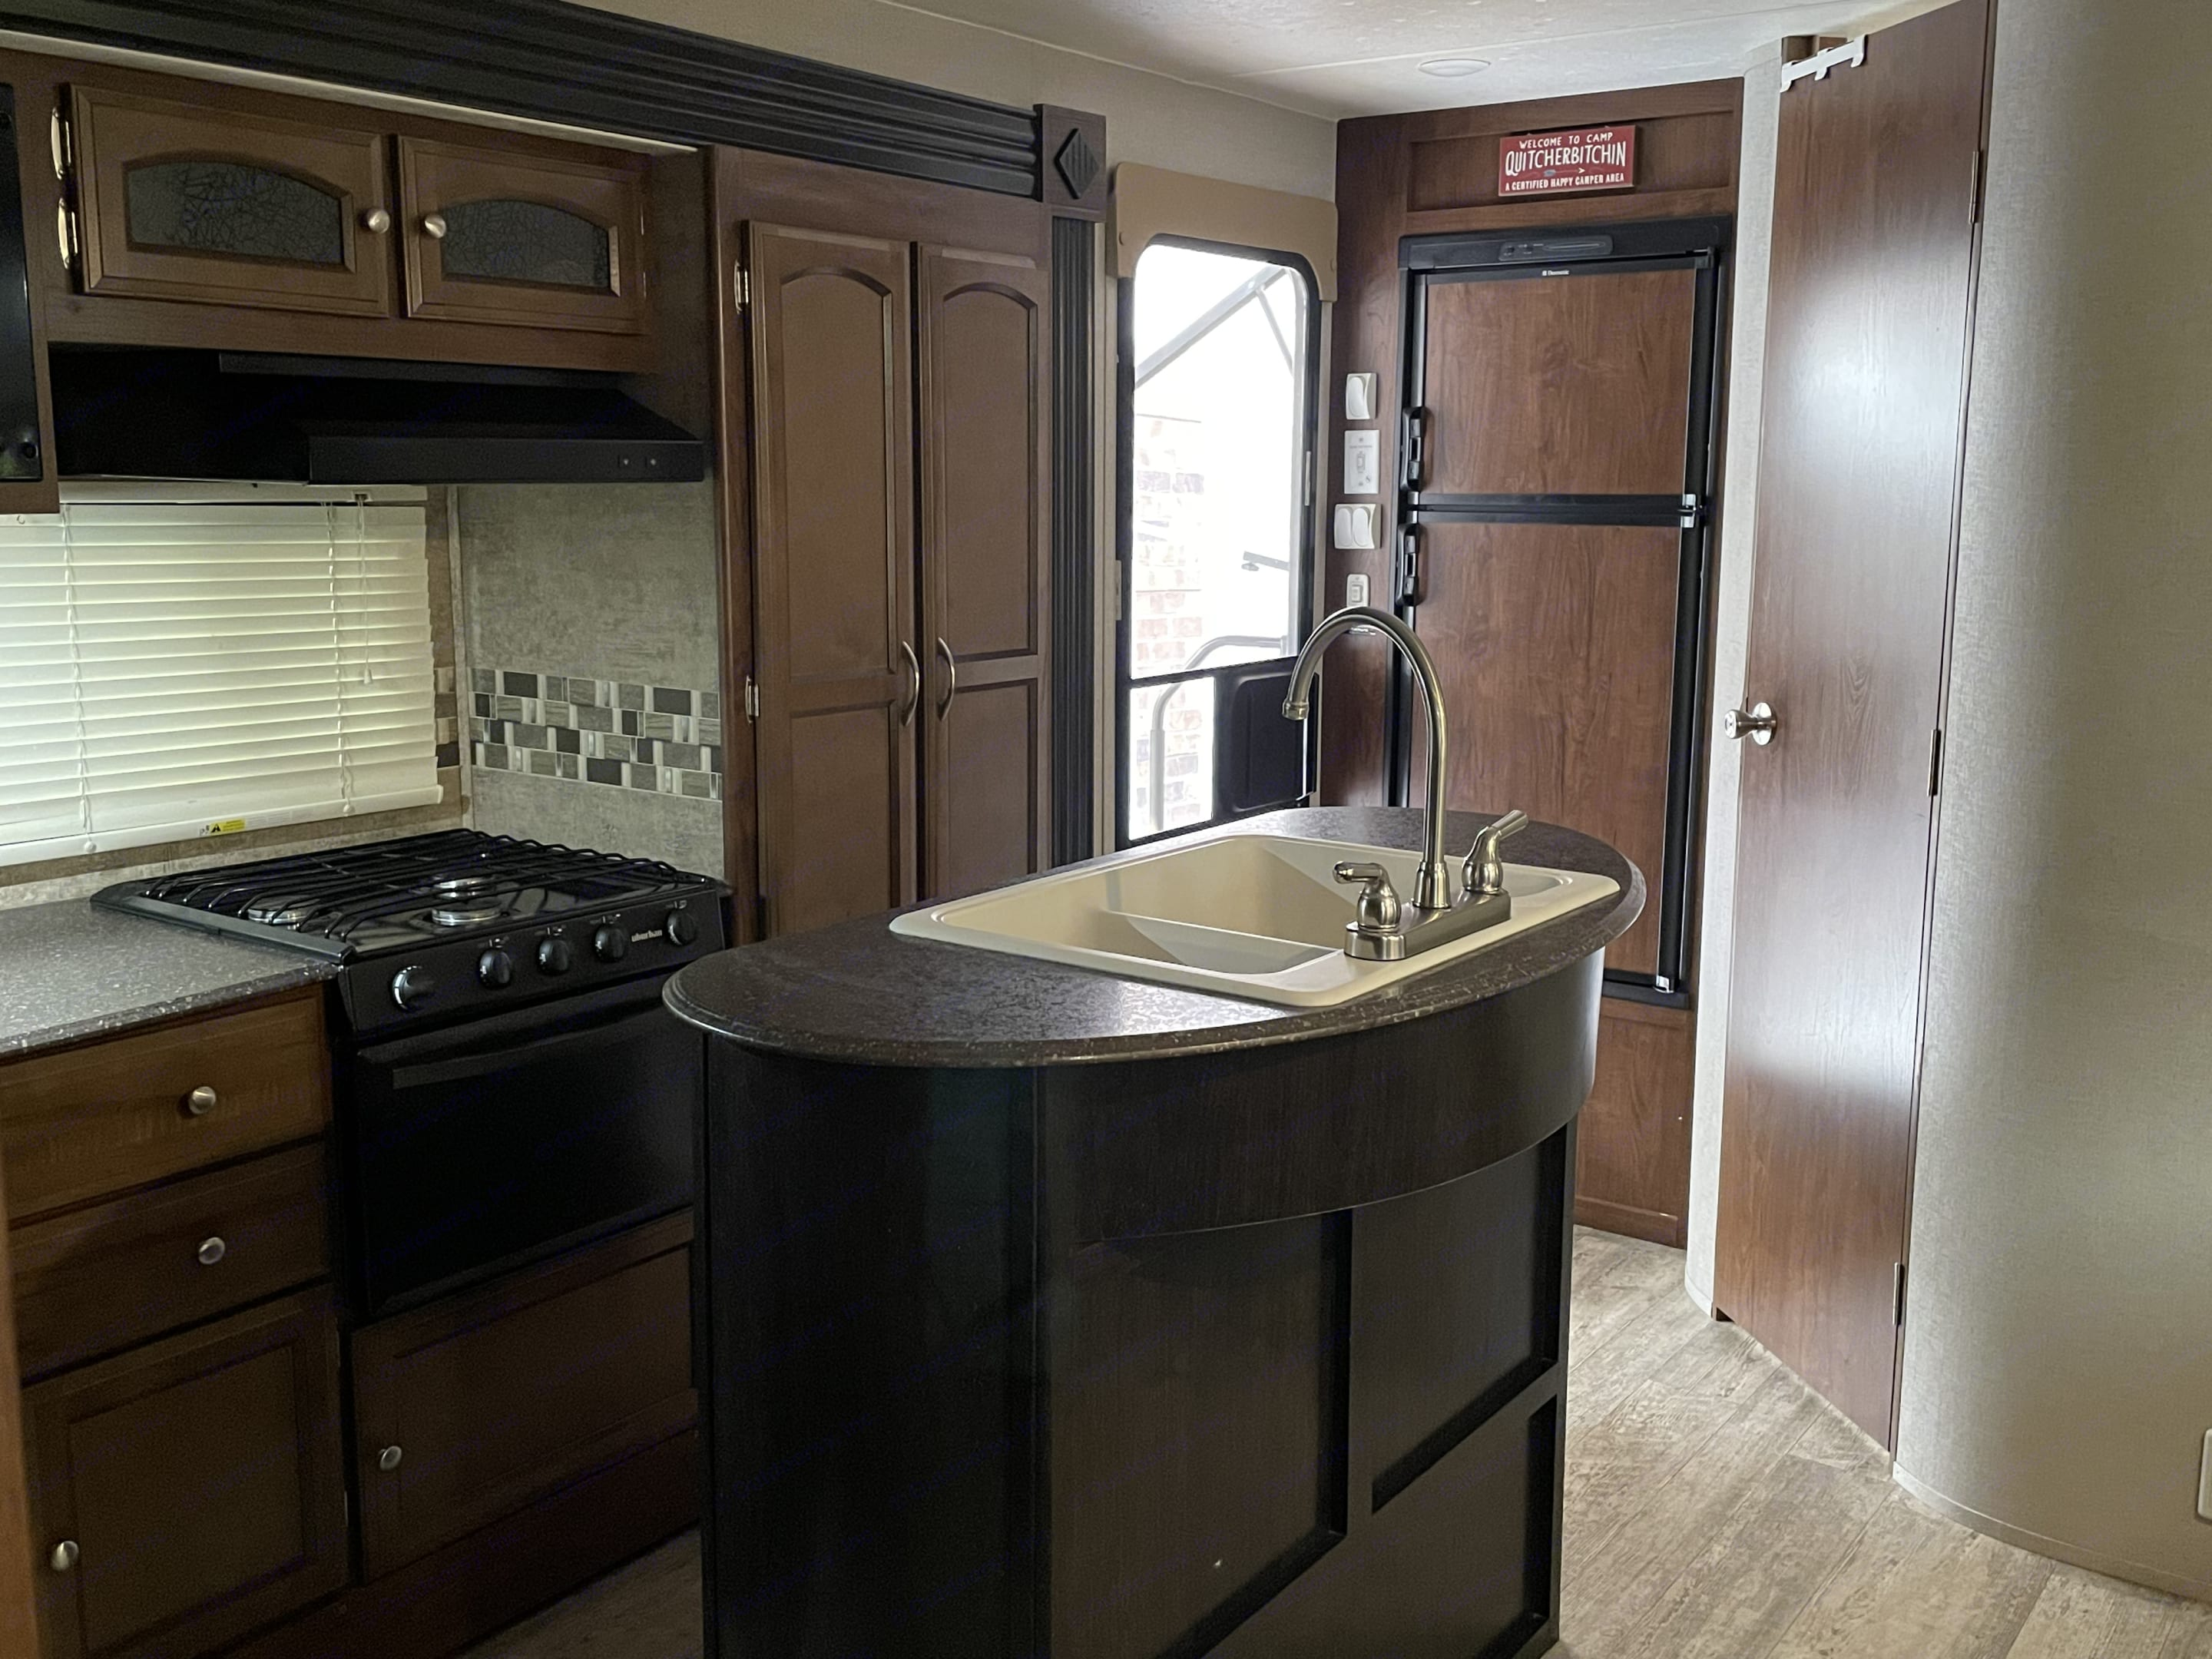 The island is not only chic, but has additional plugs, which is a good place to put the included coffee maker, or anything else that may need power. . Coachmen Freedom Express 2017